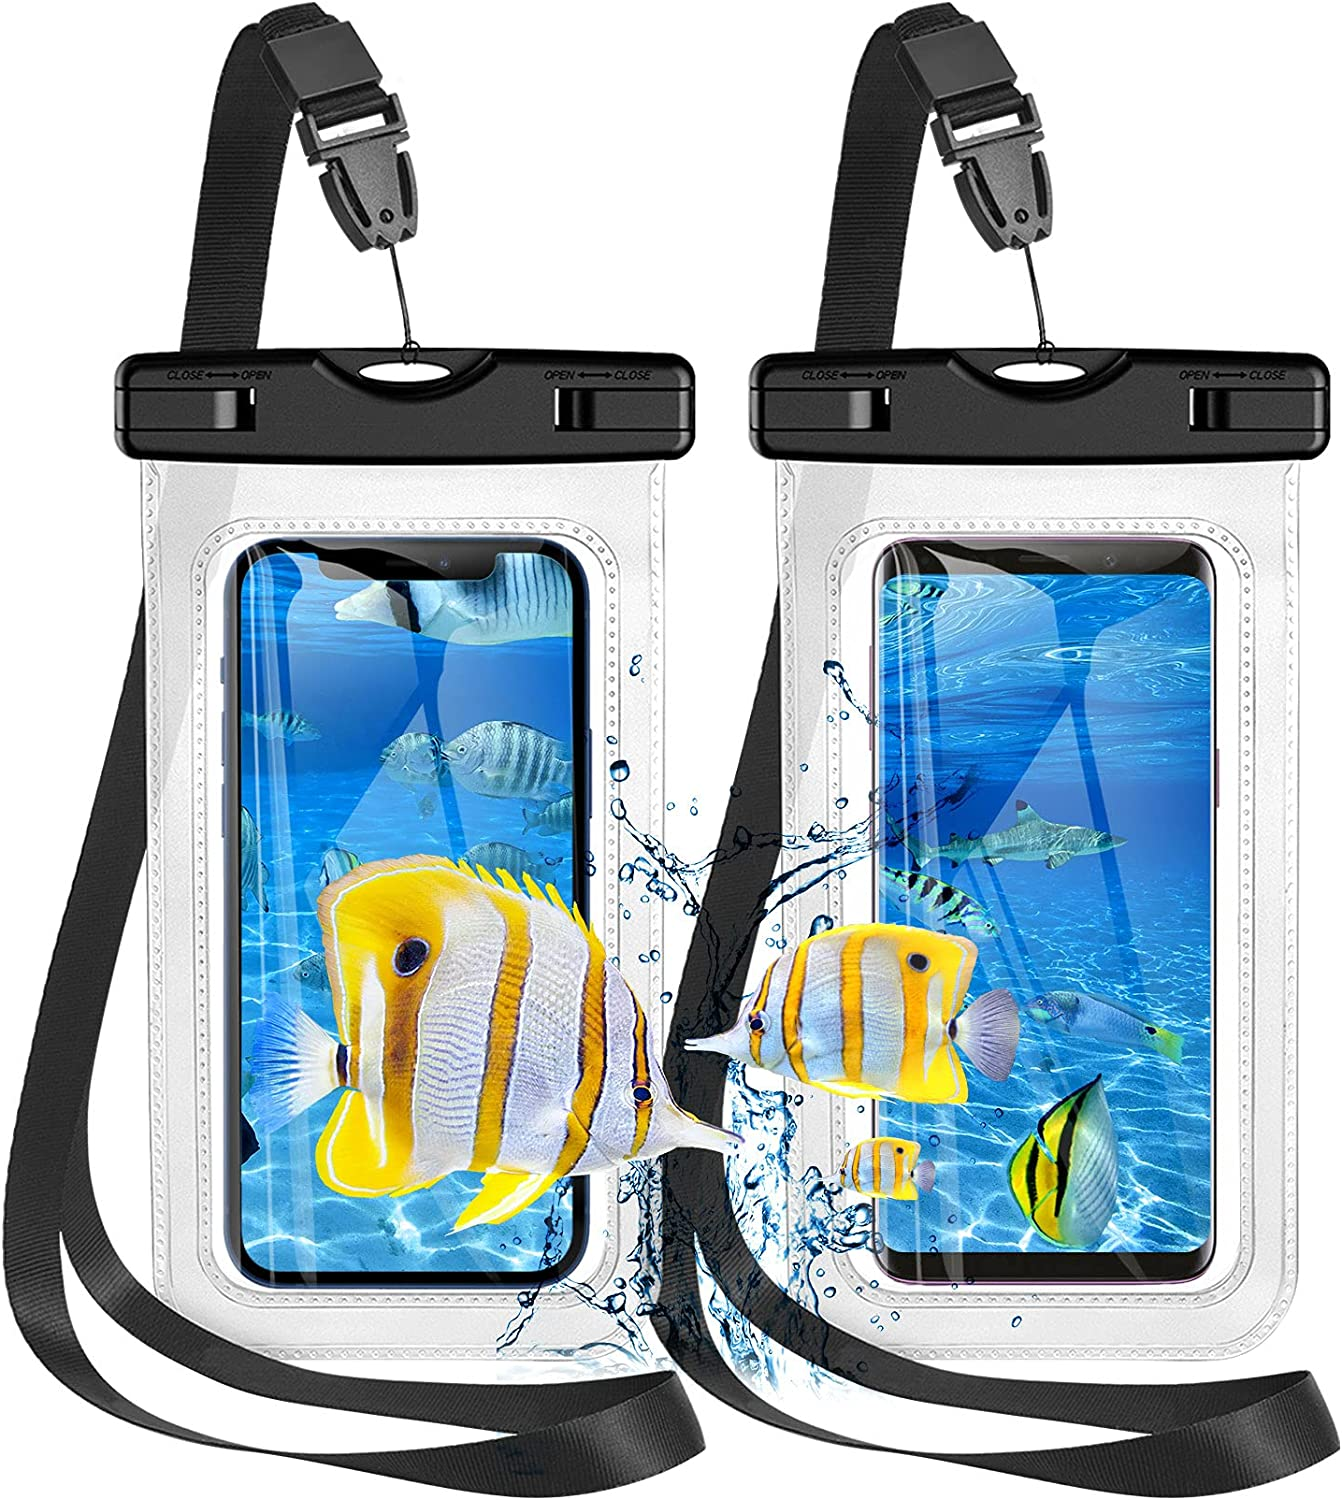 Waterproof Phone Pouch,2 Pack Universal Waterproof Phone Case, IPX8 Waterproof Phone Holder Dry Bag Compatible with iPhone 12 Pro Max/12pro/12/Galaxy S21 Ultra/S21+ UP to 7'', Beach Bag,2 Lanyards